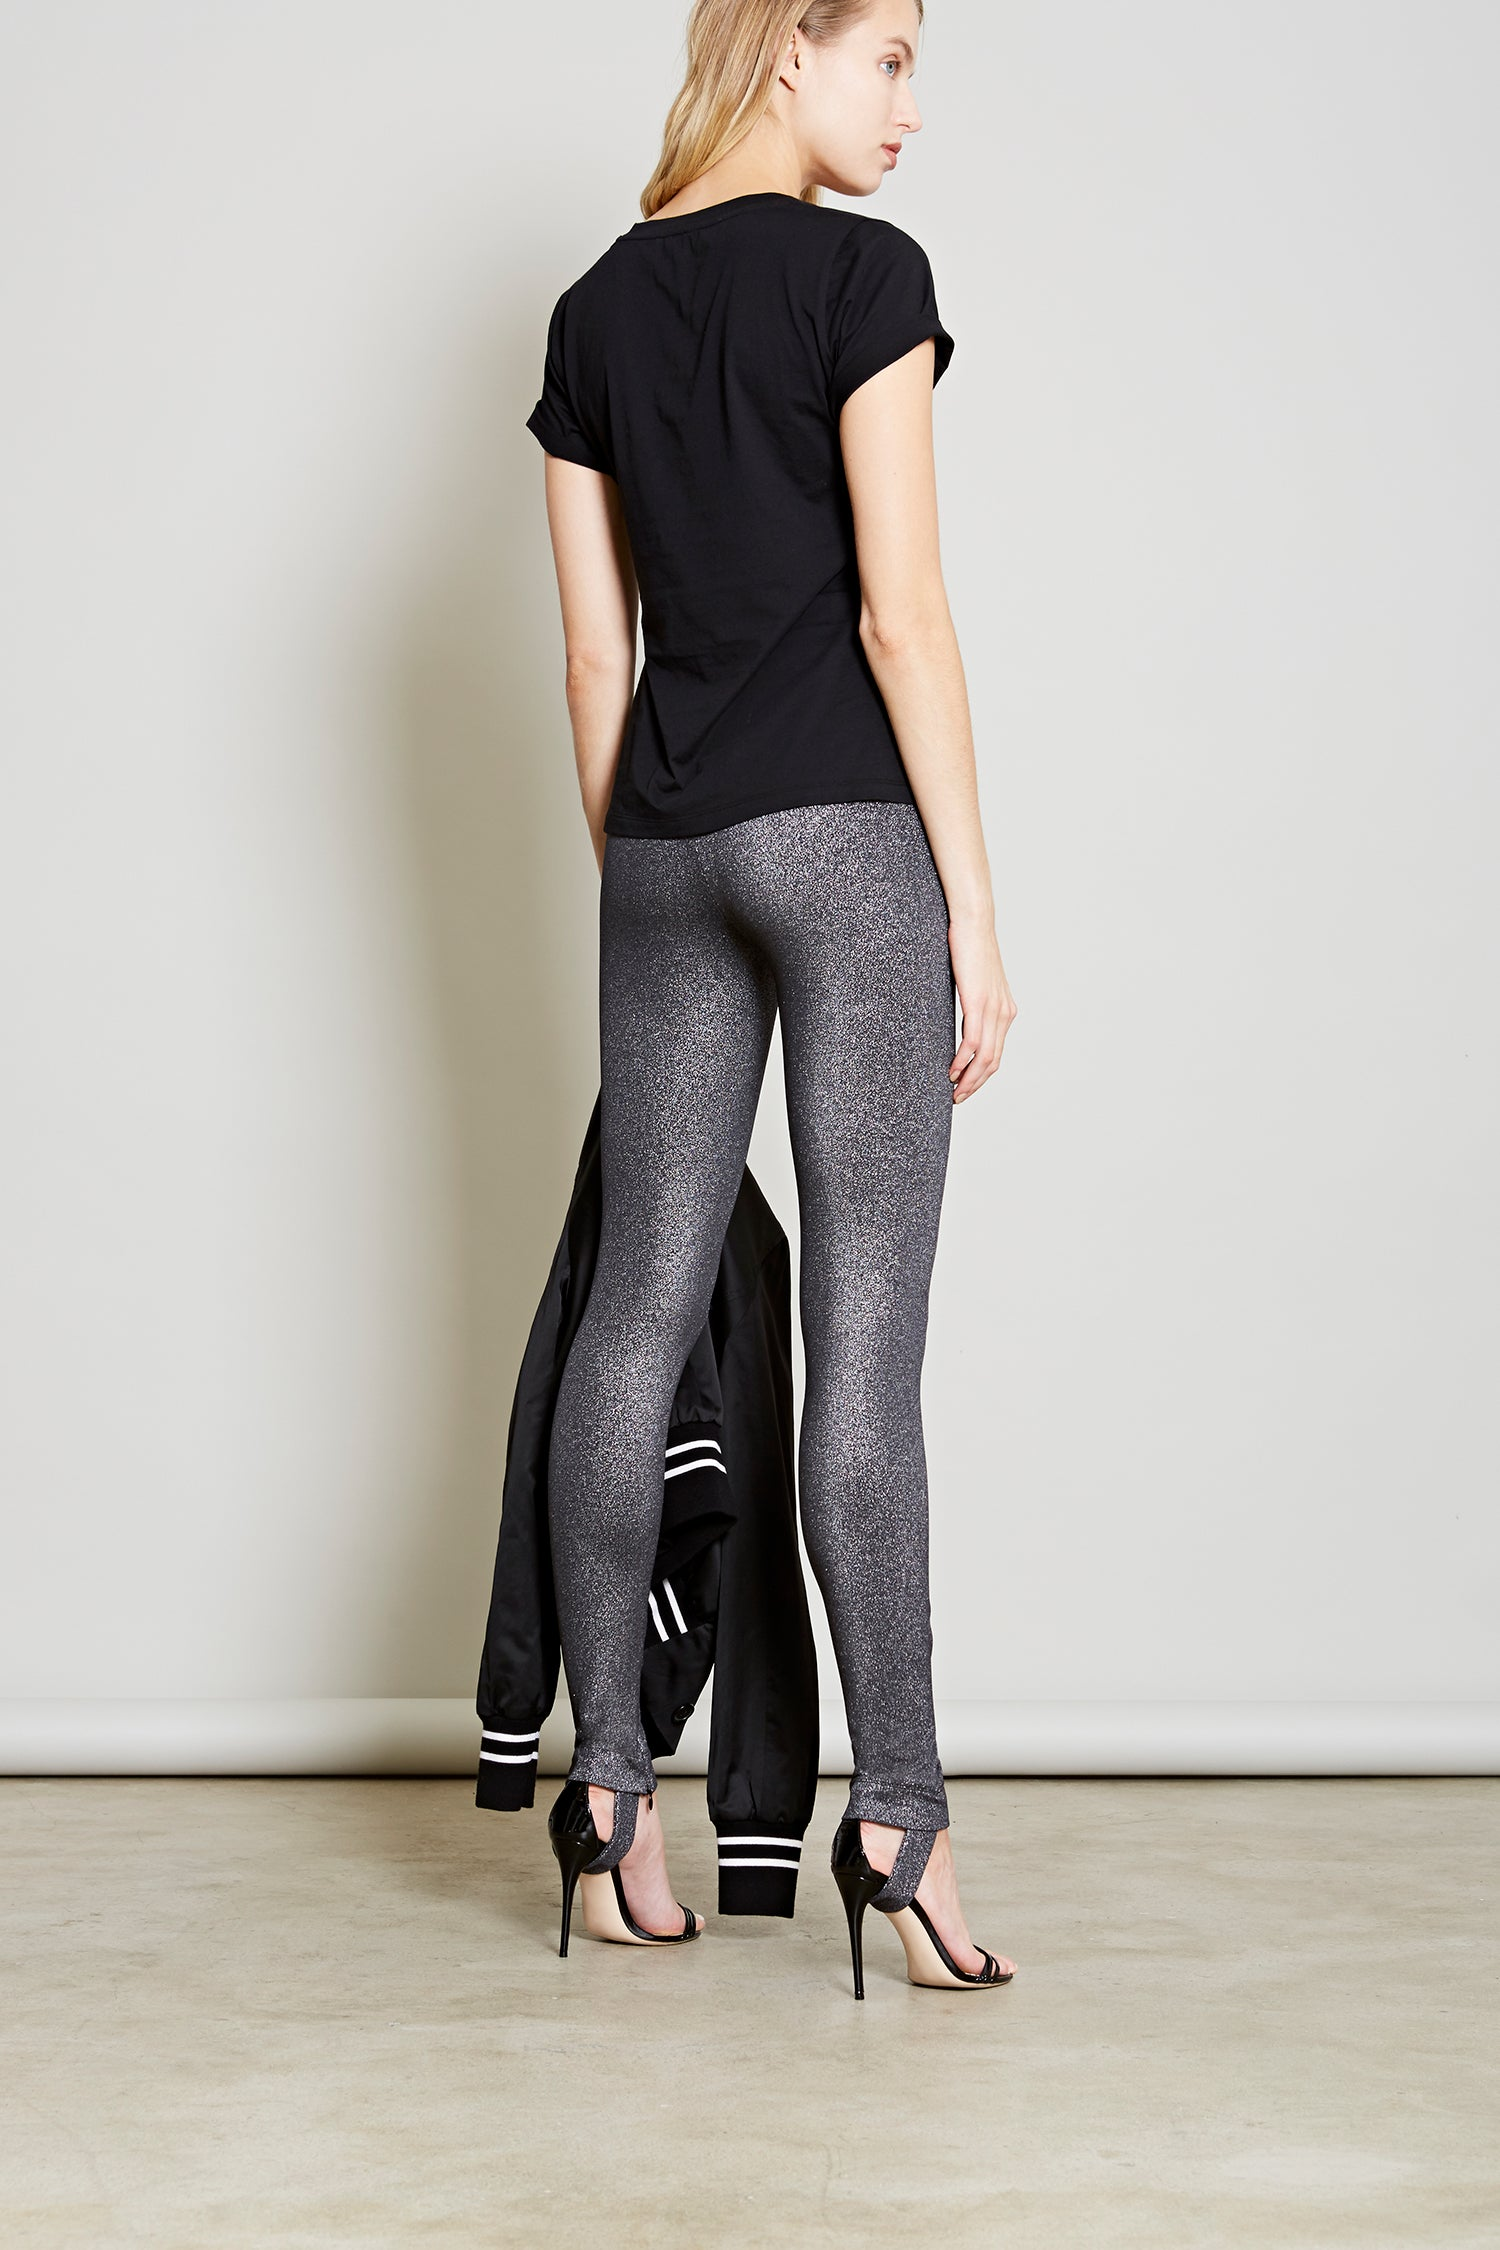 Robert Rodriguez Studio Resort 2018 Metallic Stirrup Pant